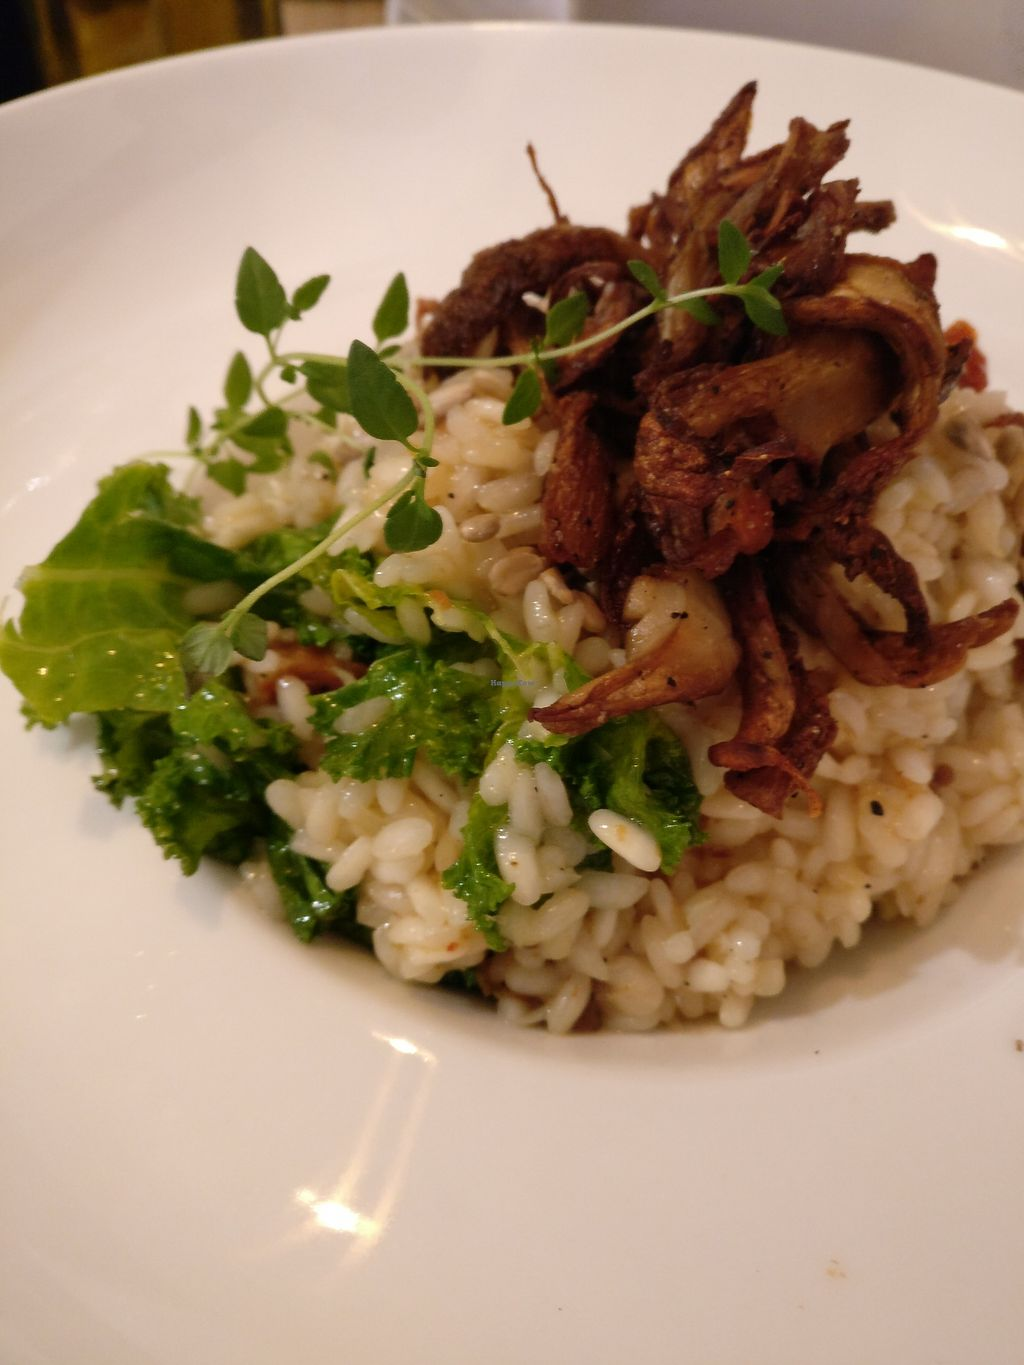 """Photo of Potrafka  by <a href=""""/members/profile/Agadooska"""">Agadooska</a> <br/>Barley risotto with crispy oyster mushrooms (delicious) <br/> August 26, 2017  - <a href='/contact/abuse/image/99610/297613'>Report</a>"""